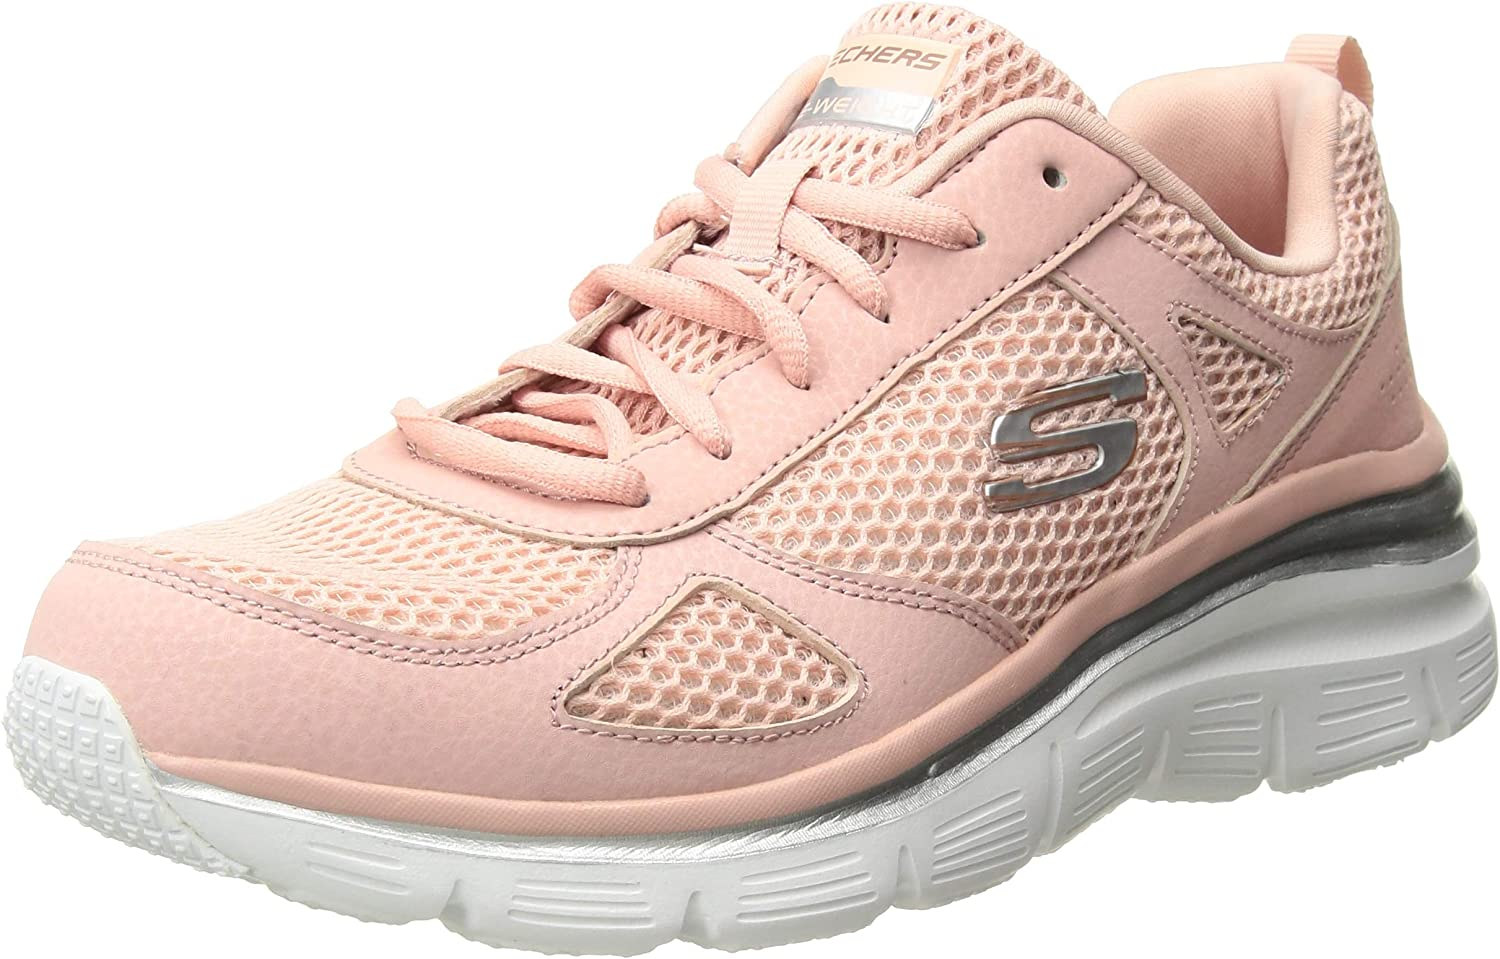 Skechers Women's Fashion FIT-Perfect Mate Sneaker, pnk, 6 M US